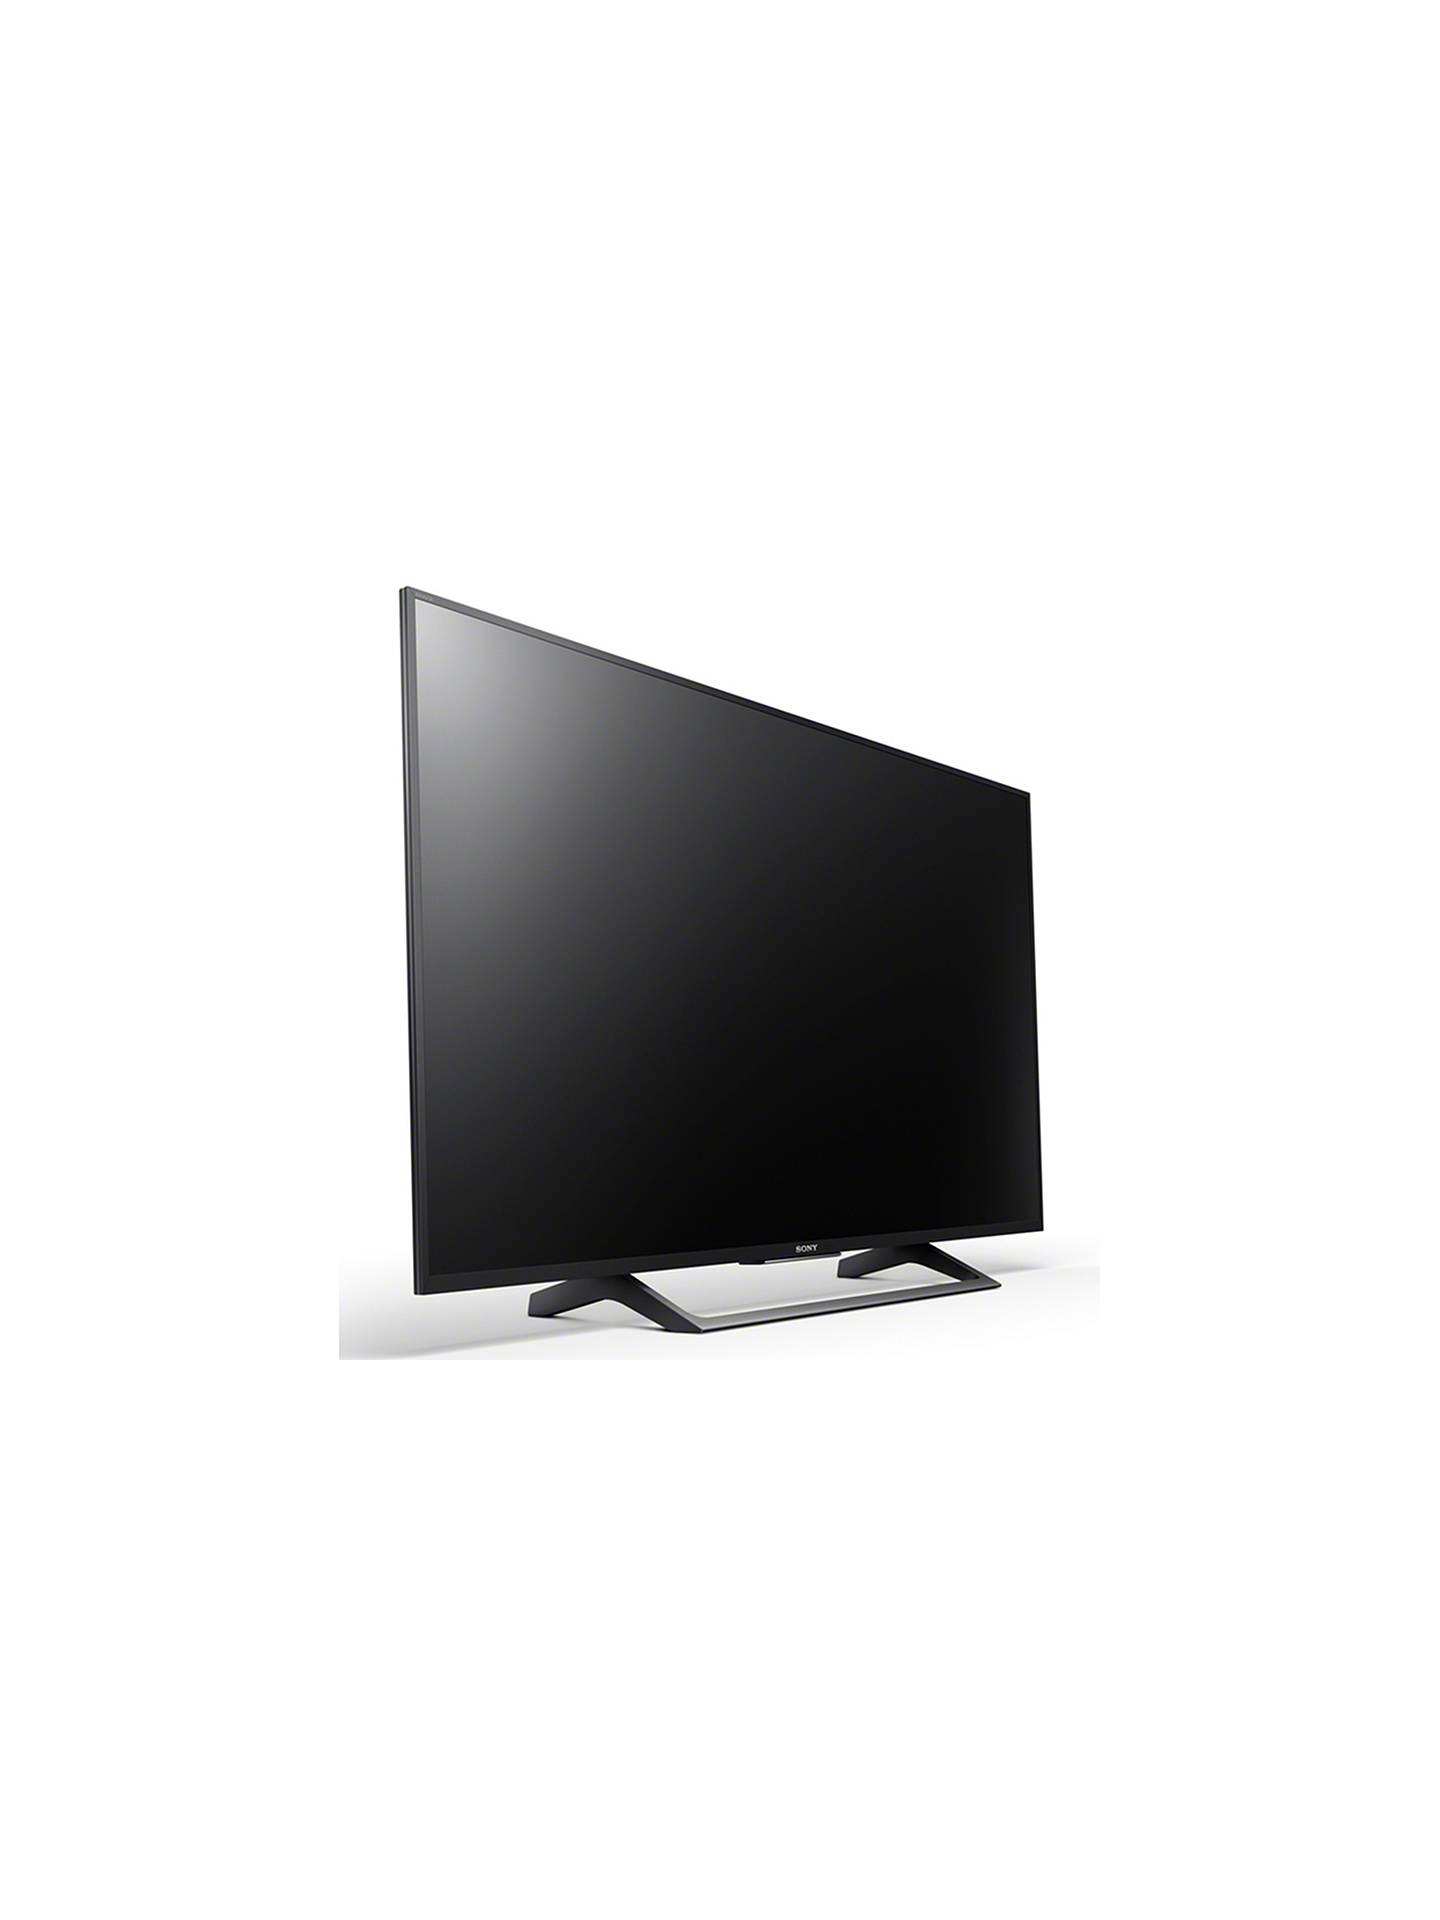 Sony Bravia KD49XE8005 LED HDR 4K Ultra HD Smart Android TV, 49